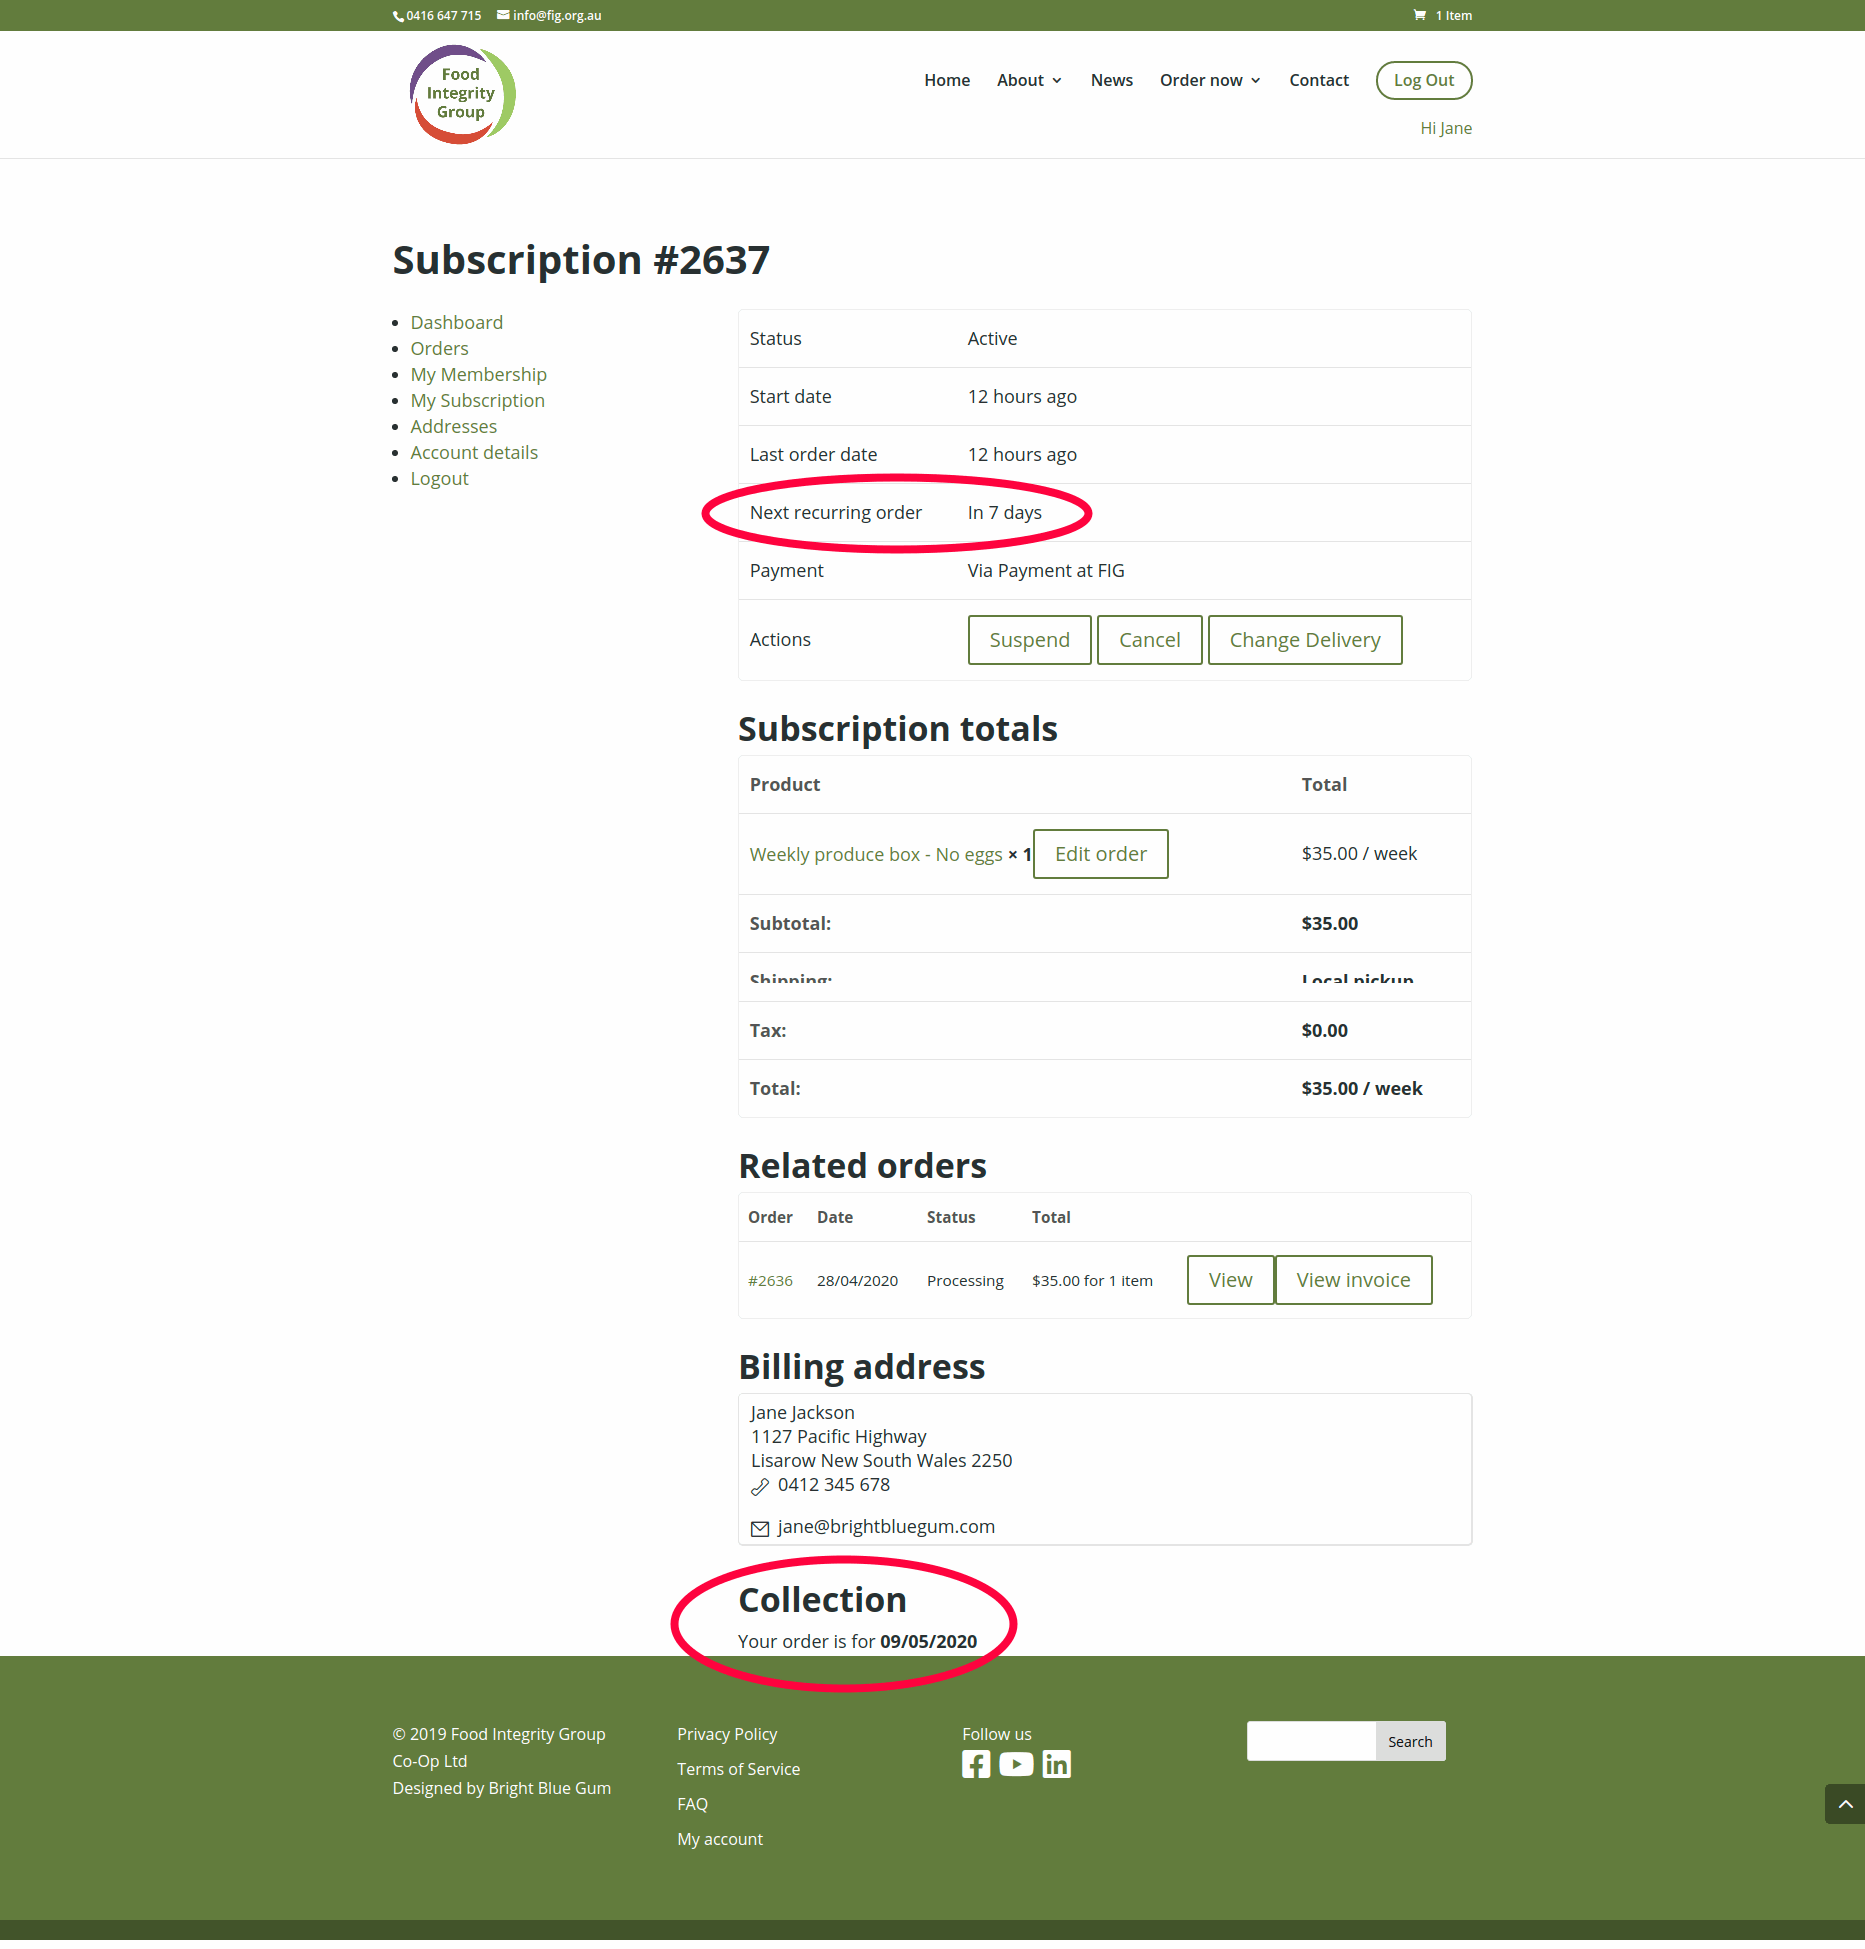 Example of a subscription highlighting the next recurring order and the collection date